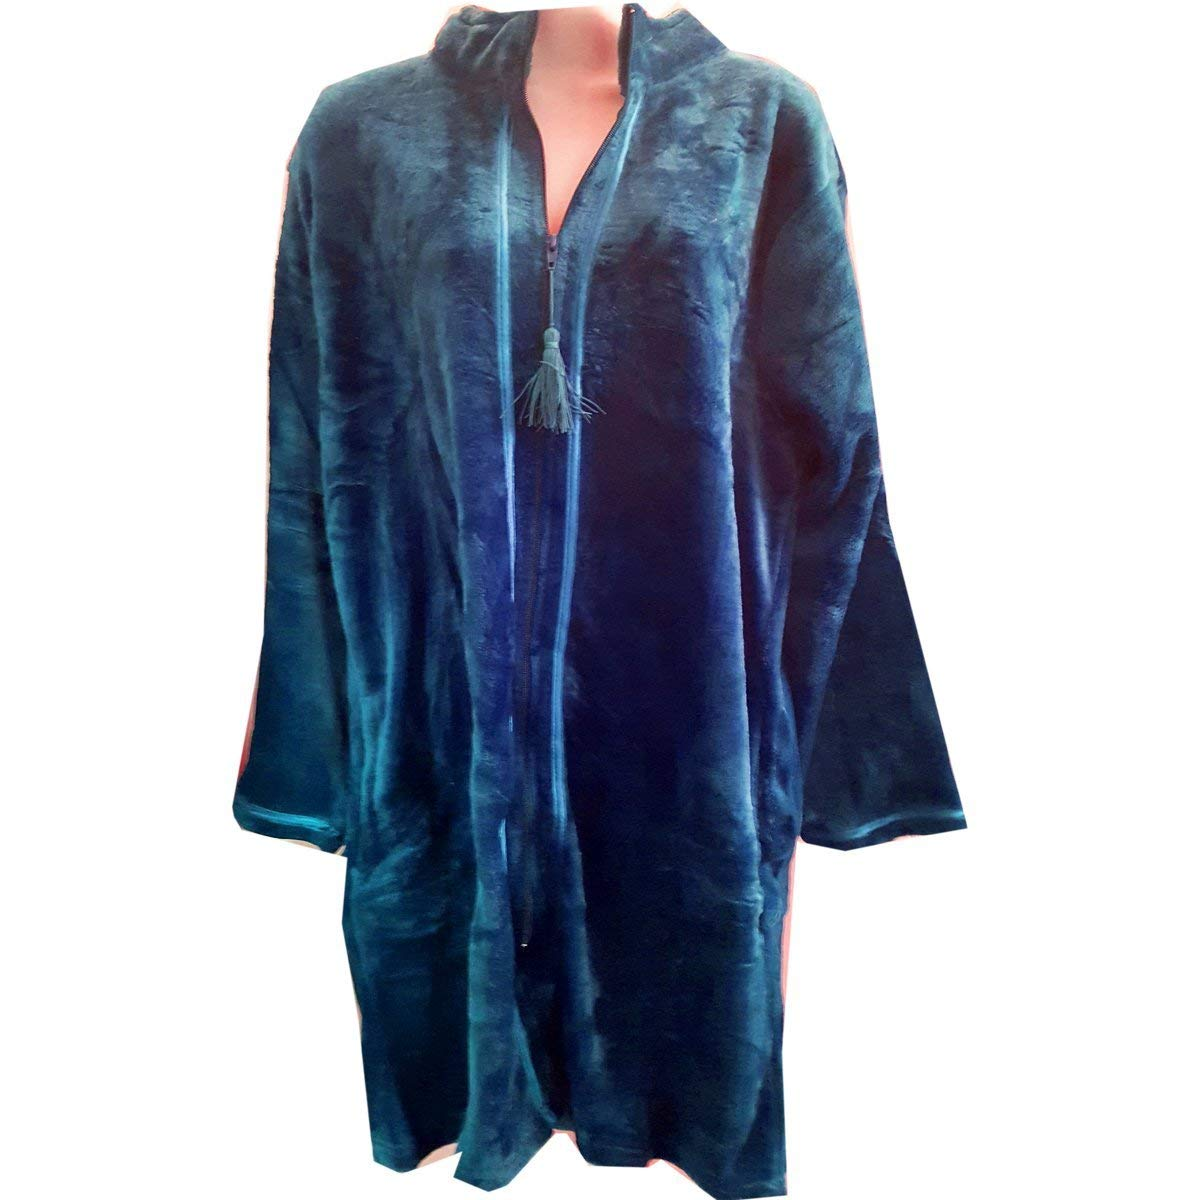 Serre'' Women's Velvet Plush Robe Zipper Front w/Tassels - Blue, 2XL